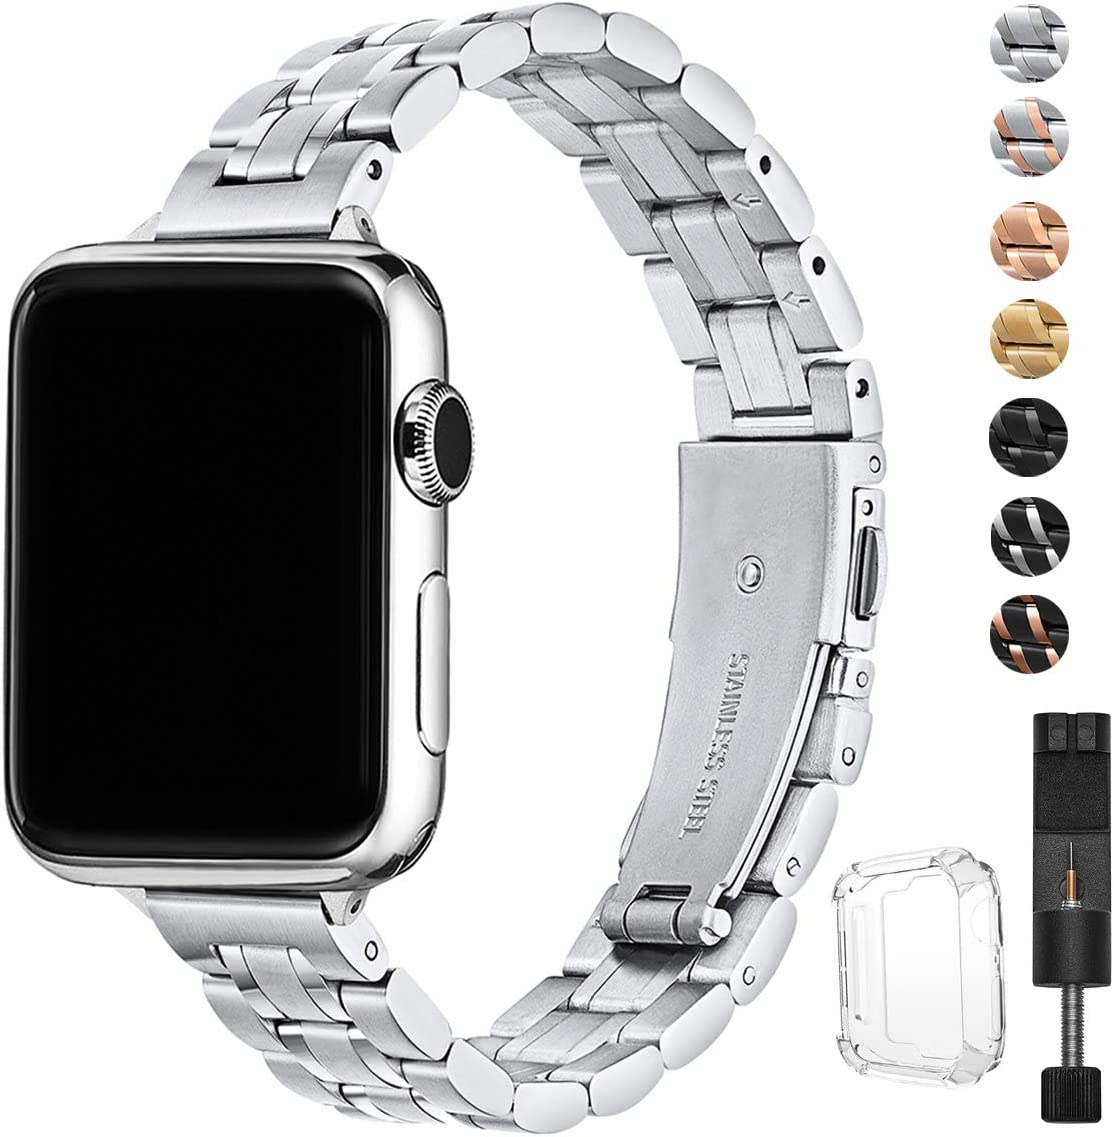 HEKAI Bands Compatible with Apple Watch Strap 38mm 42mm 40mm 44mm Metal, Slim Small Adjustable Stainless Steel Replacement Straps for iWatch Series 5/4/3/2/1 (38mm/40mm, Silver)